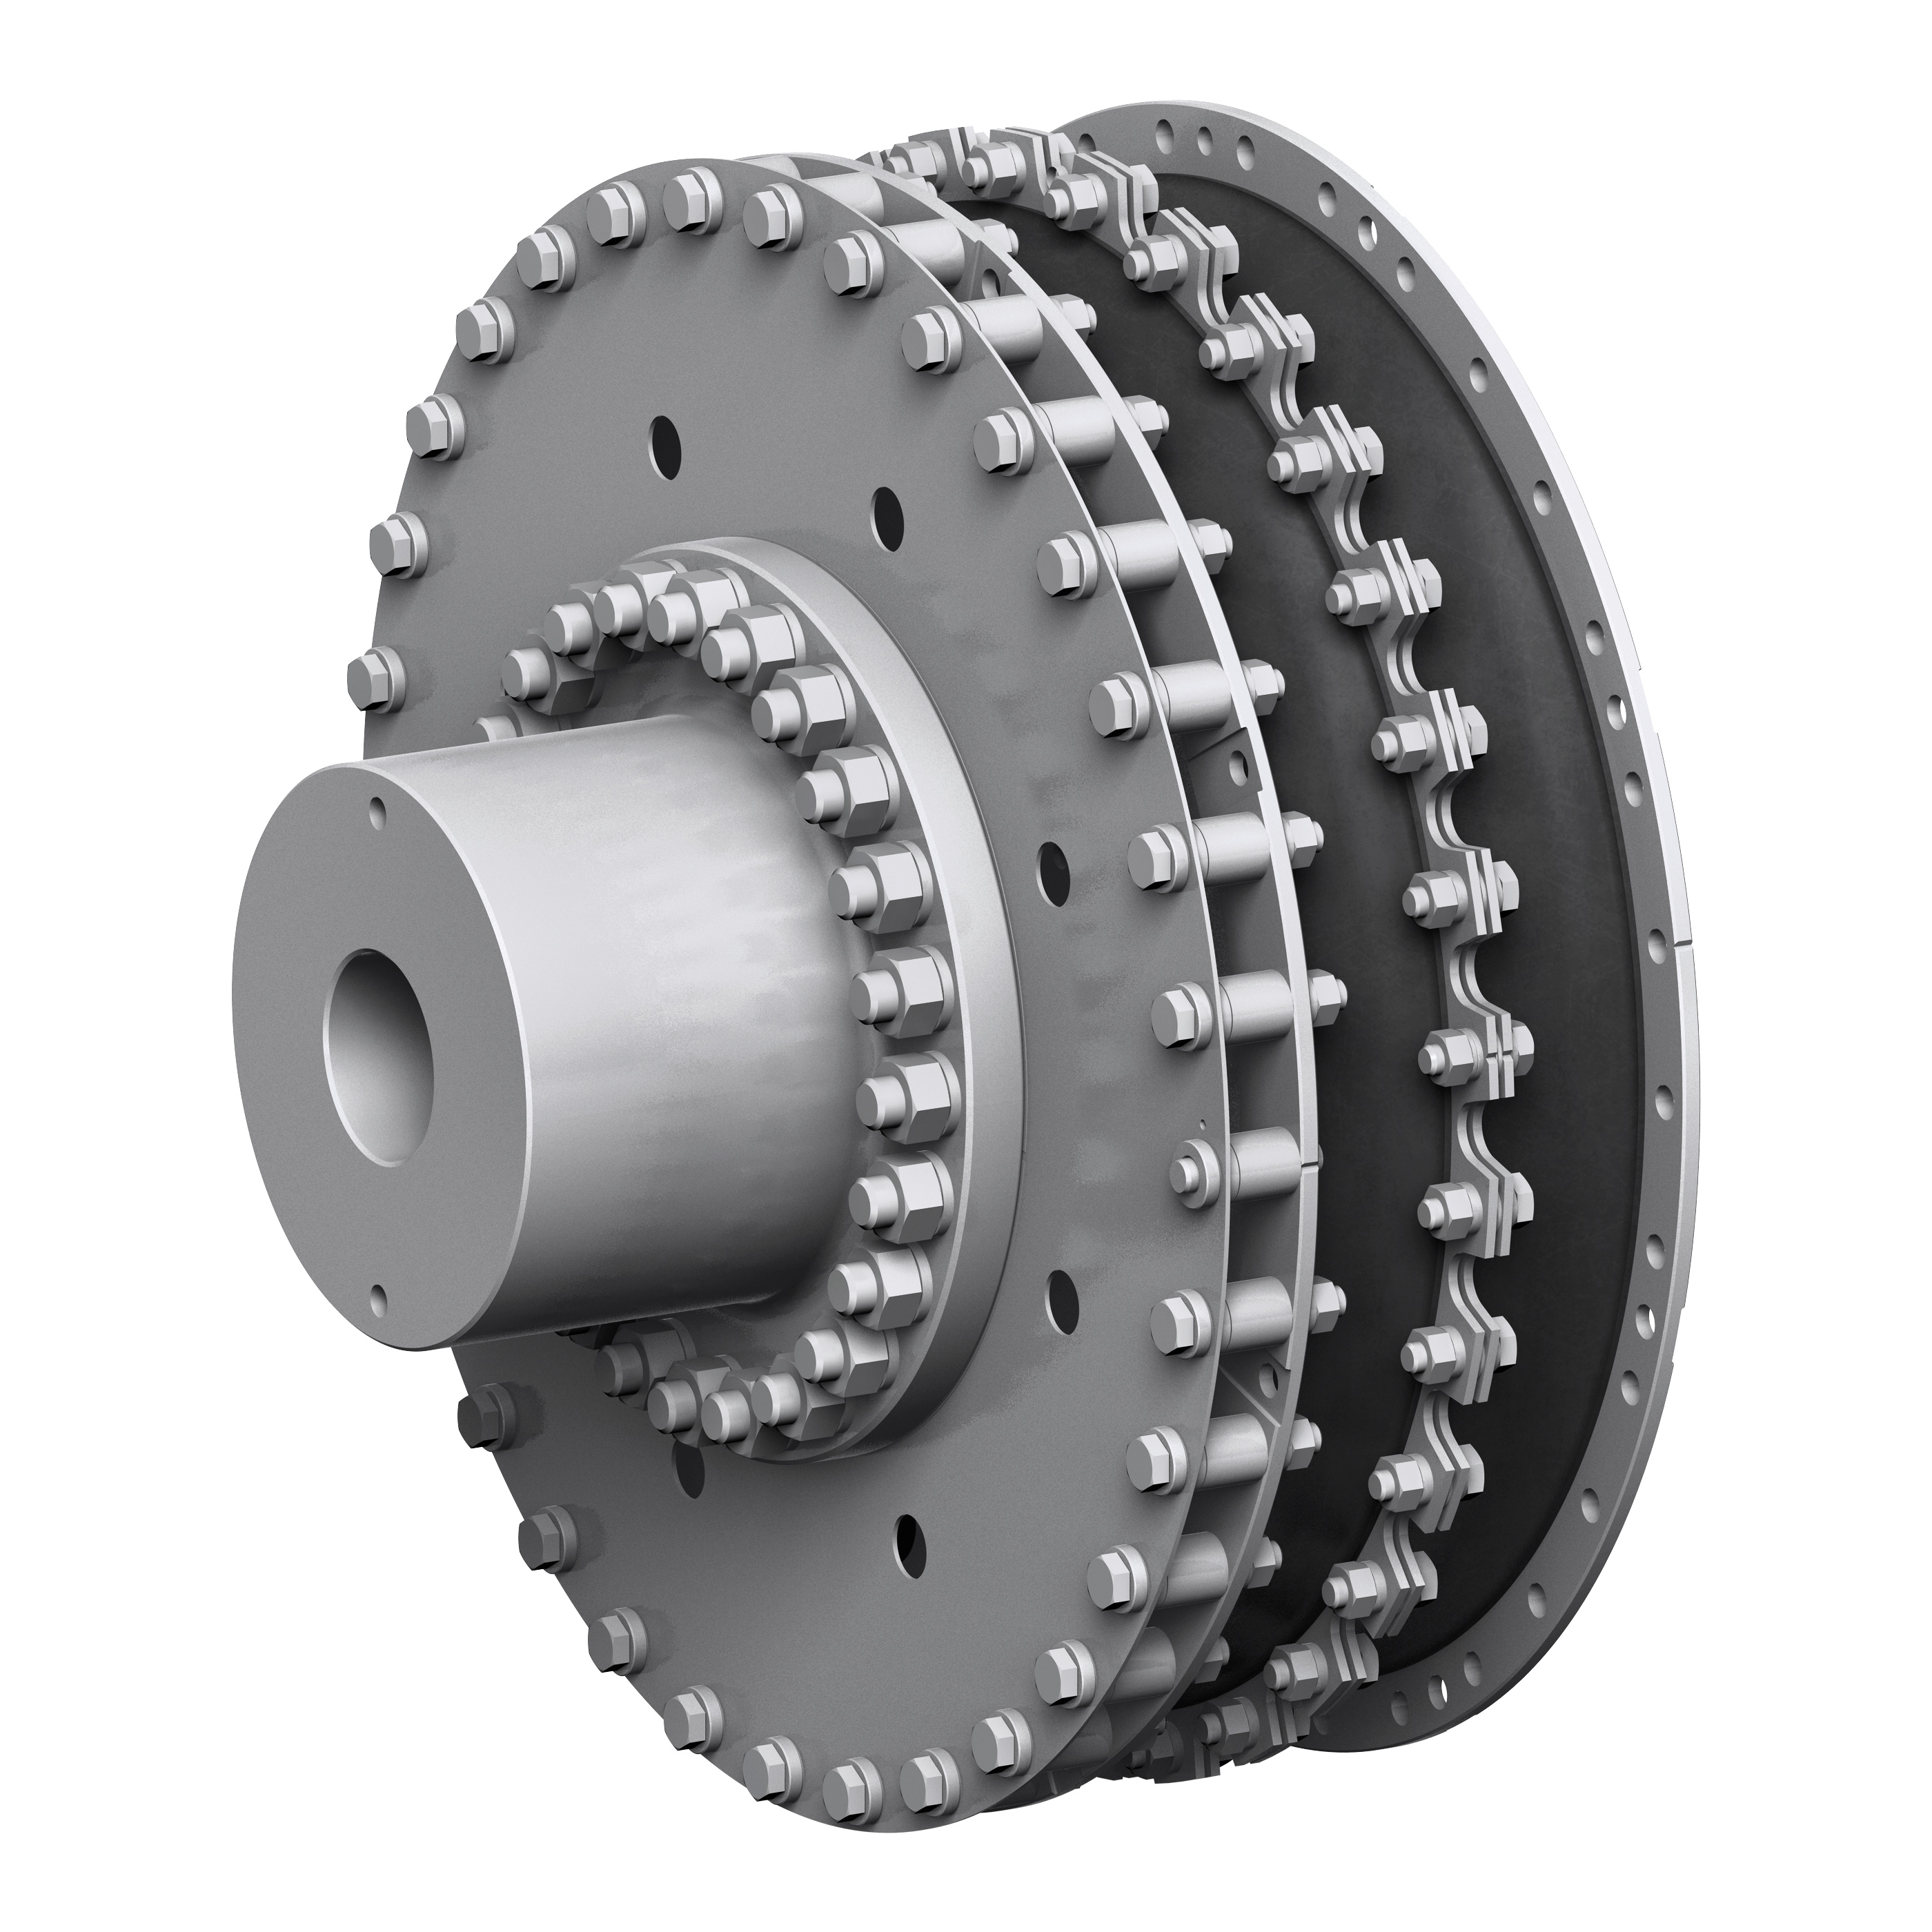 Highly Flexible Couplings - RATO R